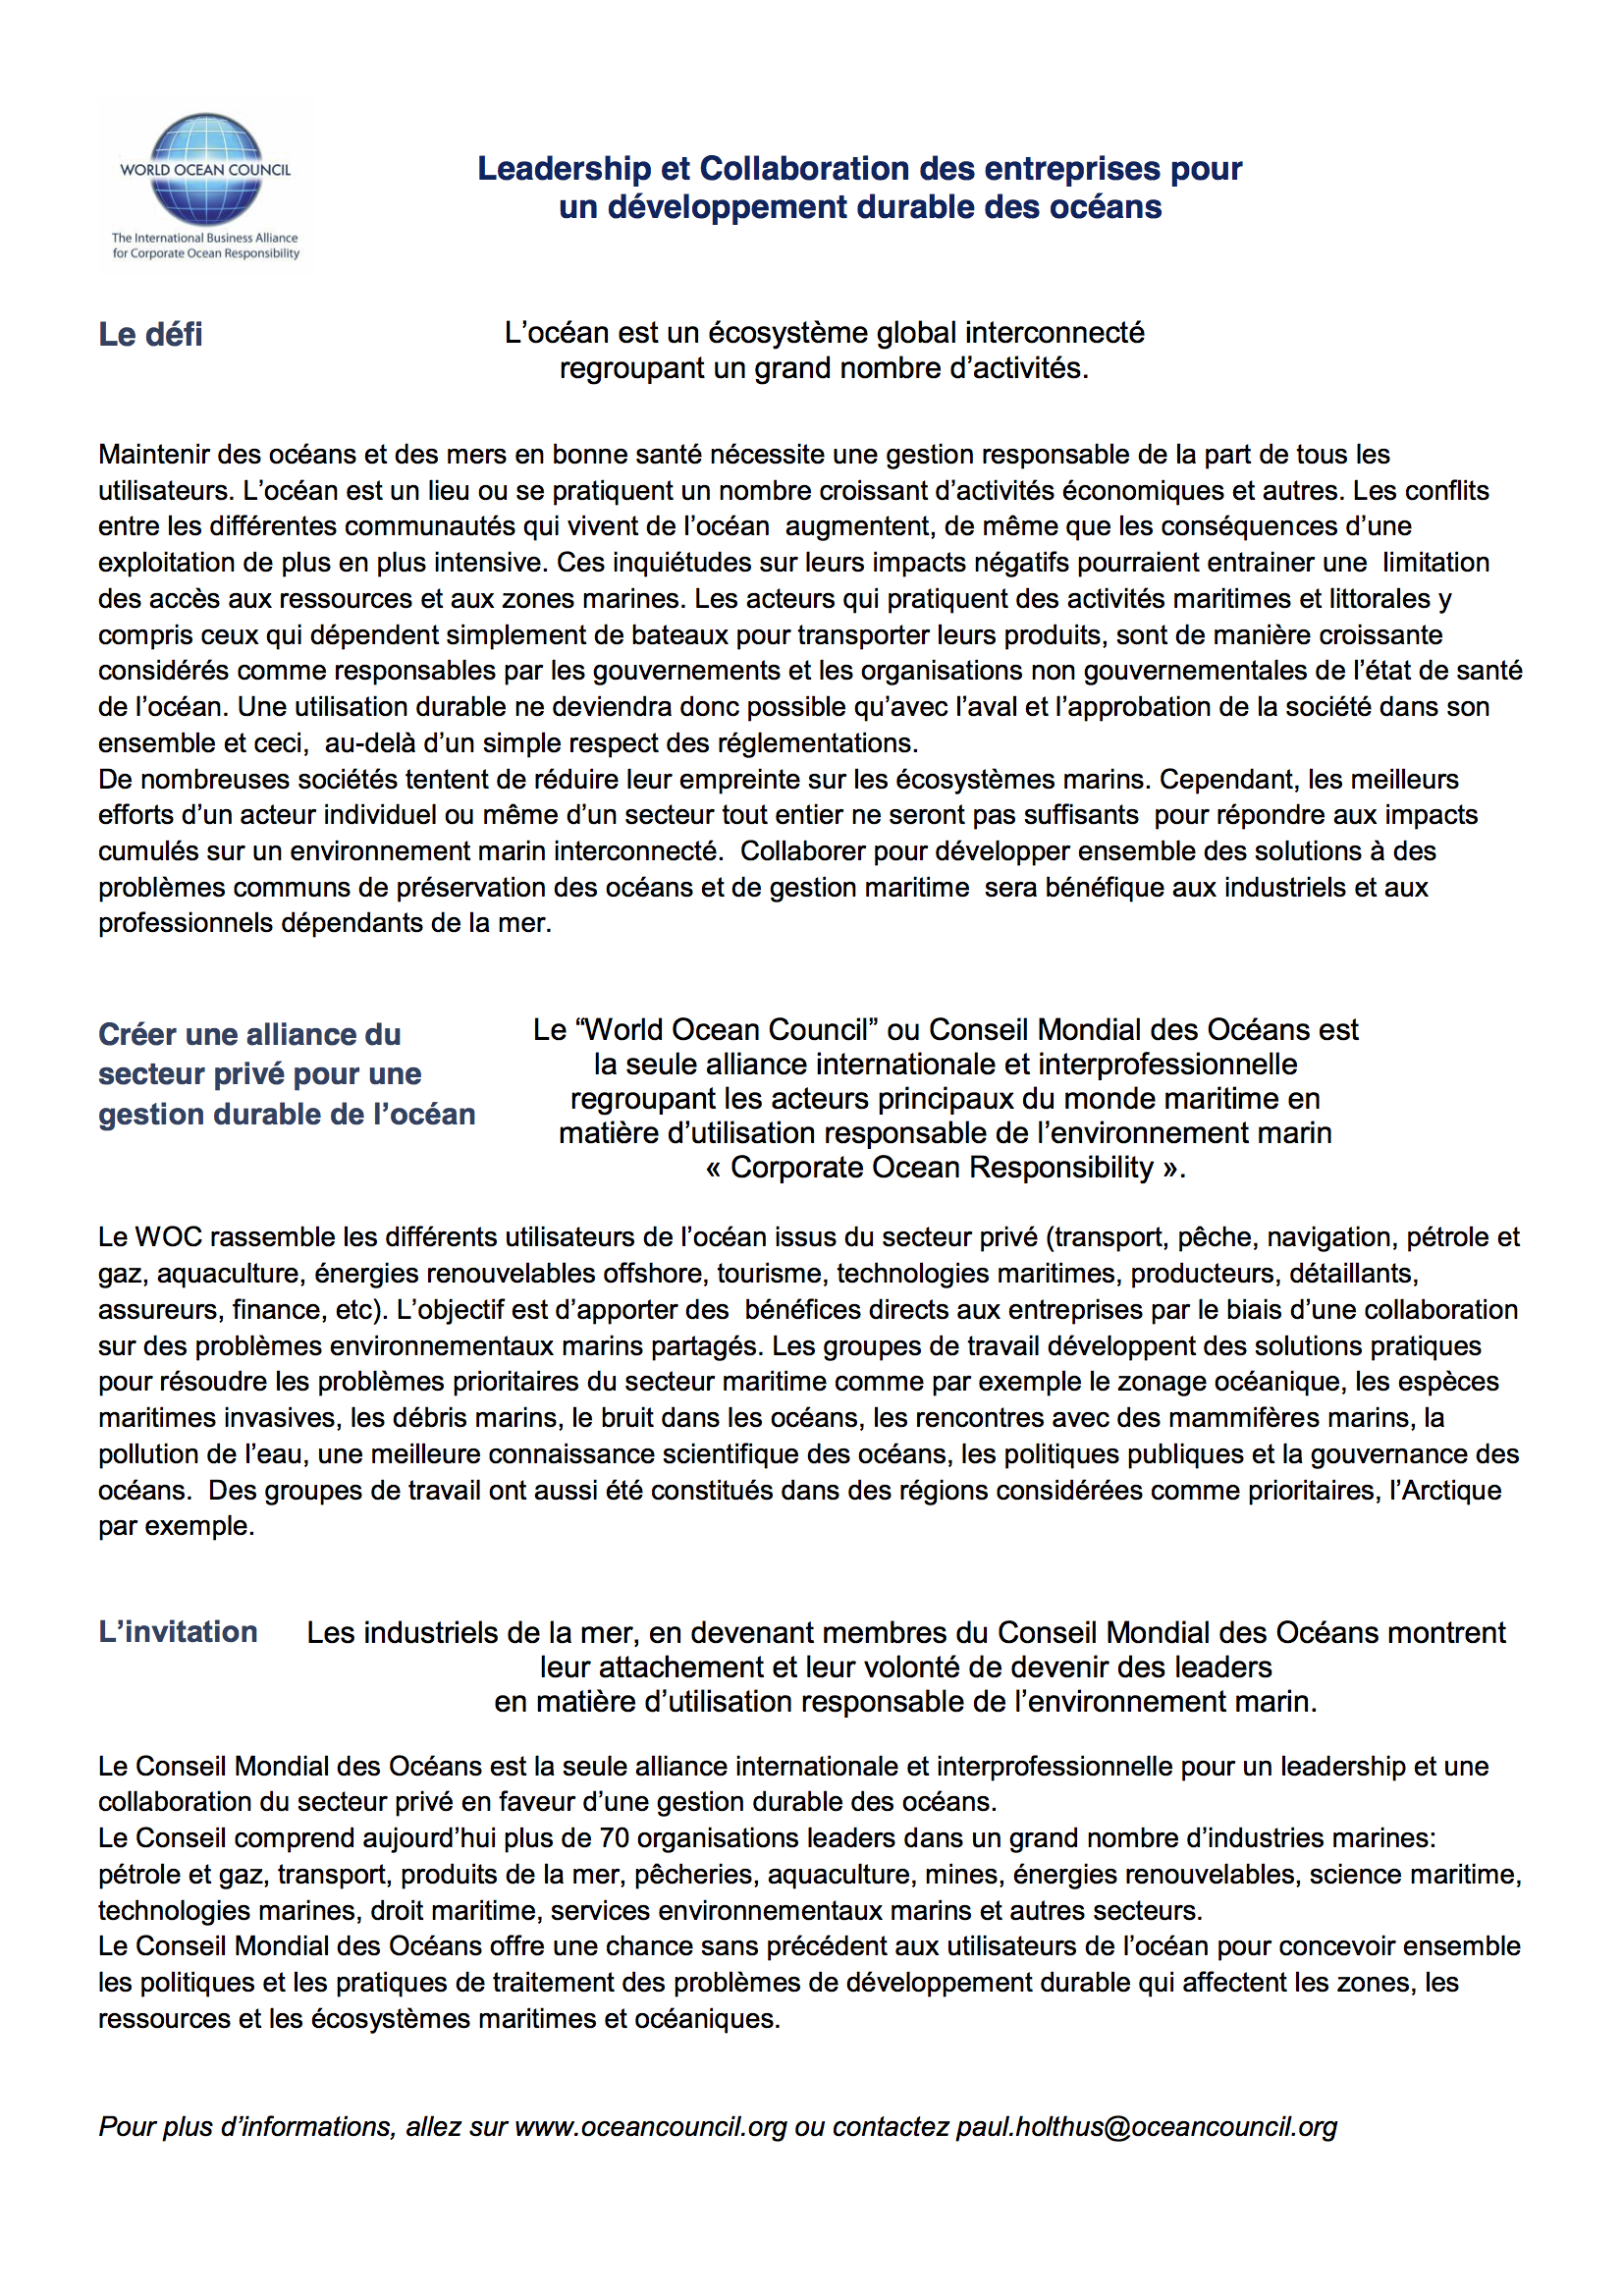 WOC in One Page, in French